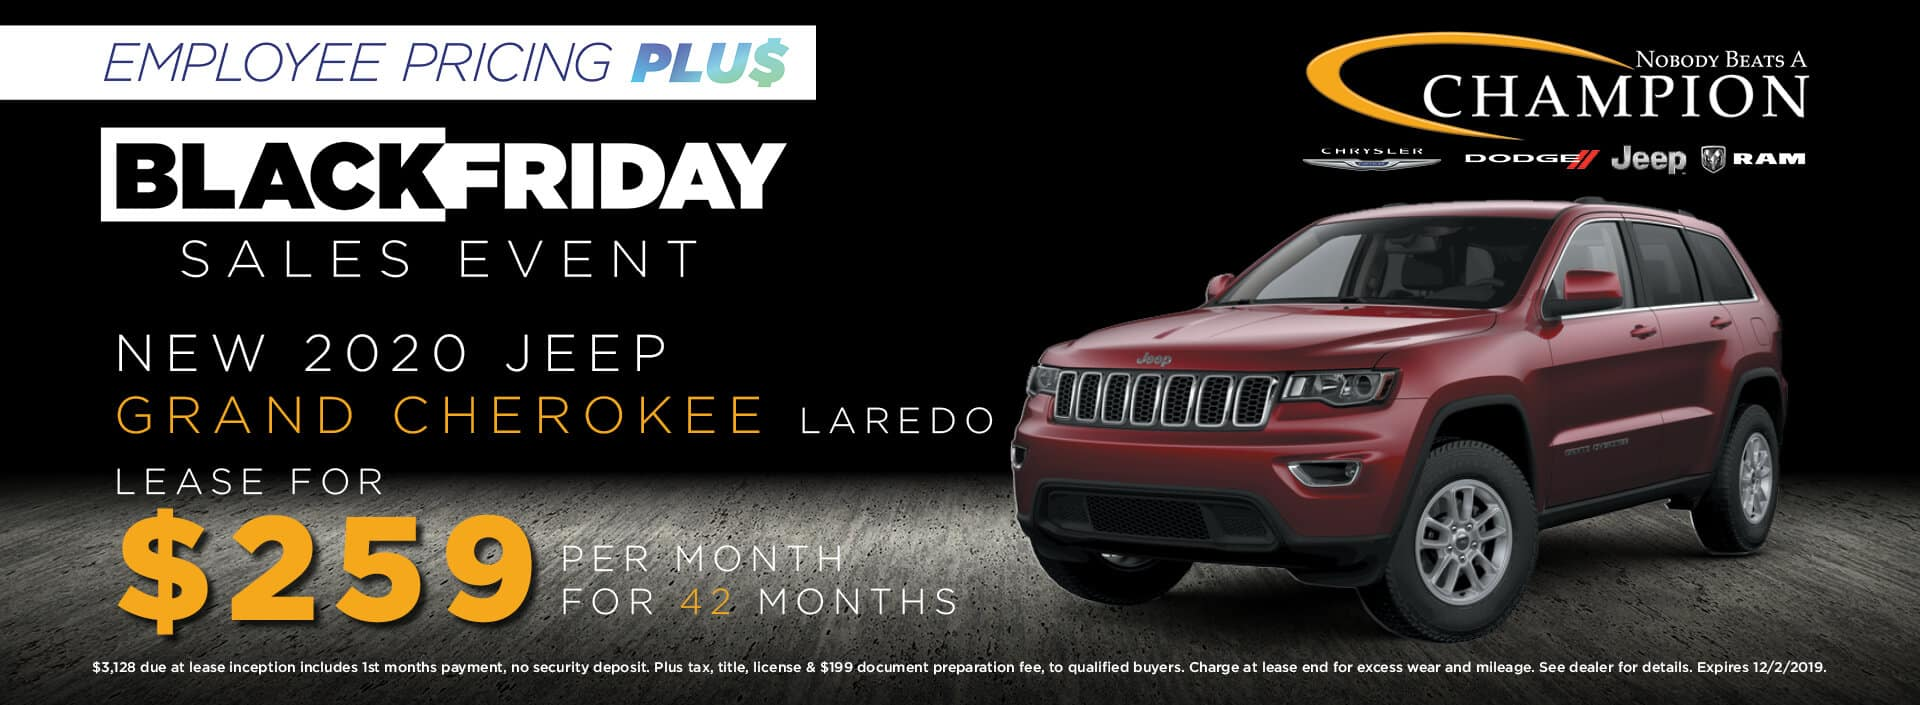 Lease a 2020 Jeep Grand Cherokee Laredo for $259/mo. for 42 mos.